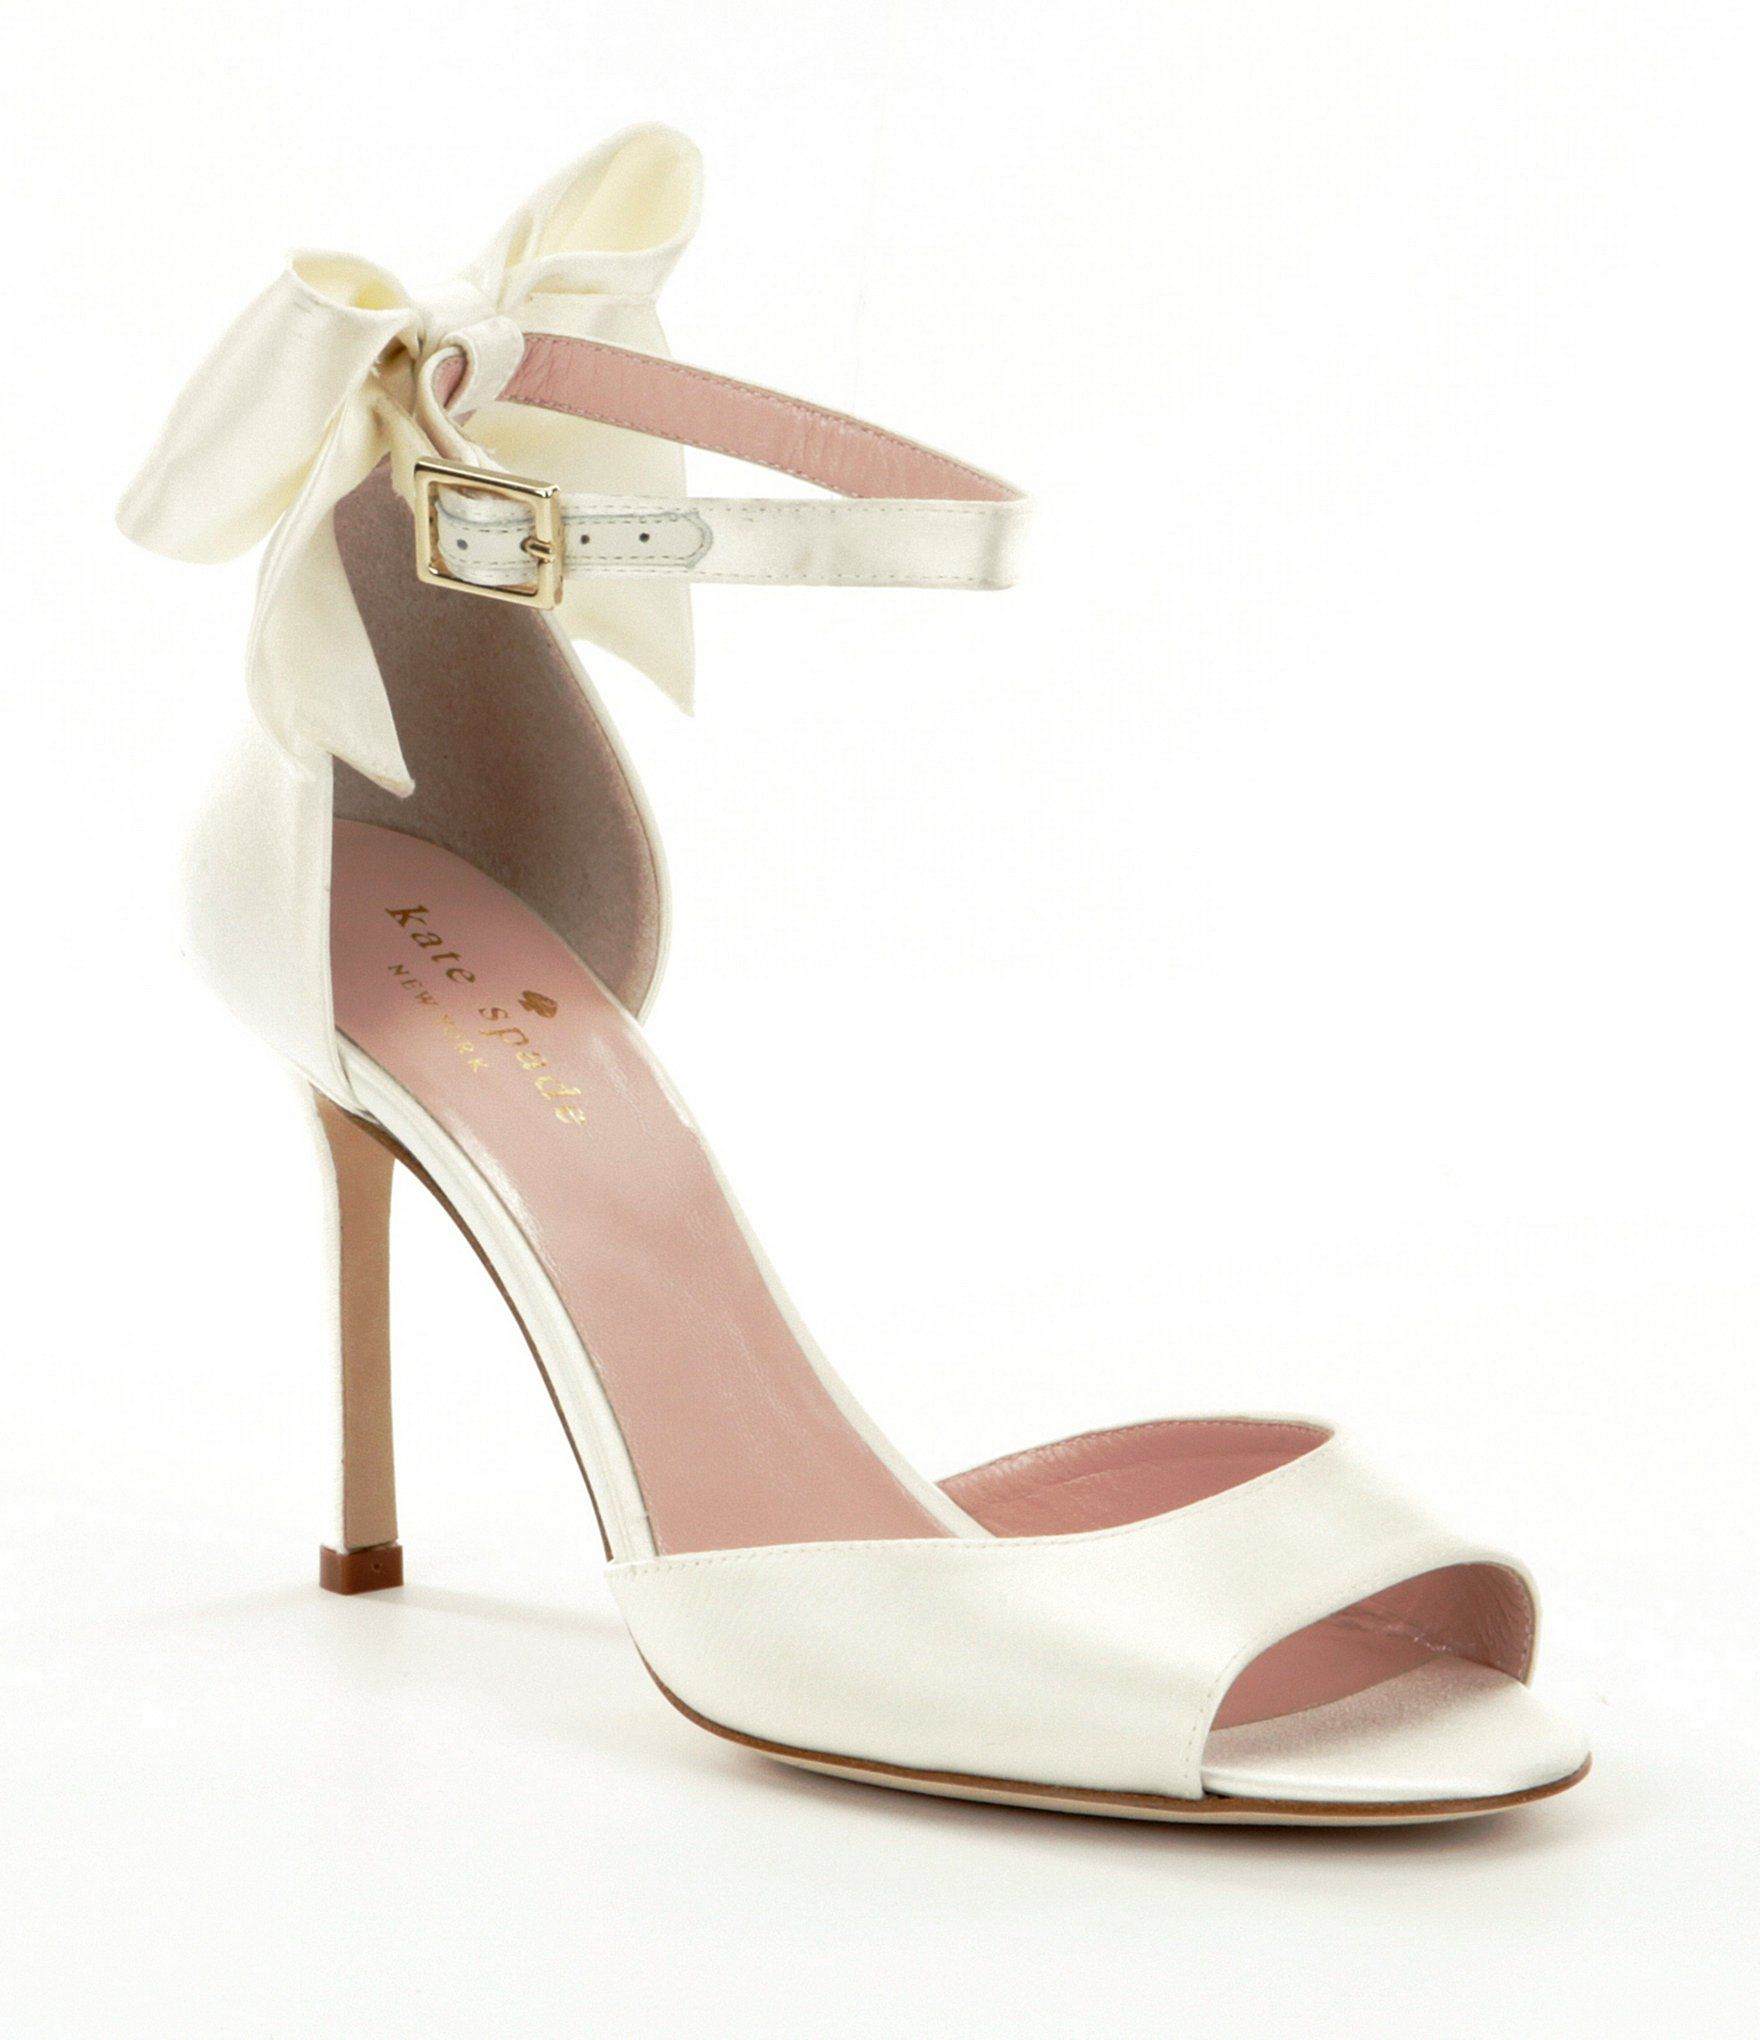 Shop For Kate Spade New York Izzie Bow Detail Satin Ankle